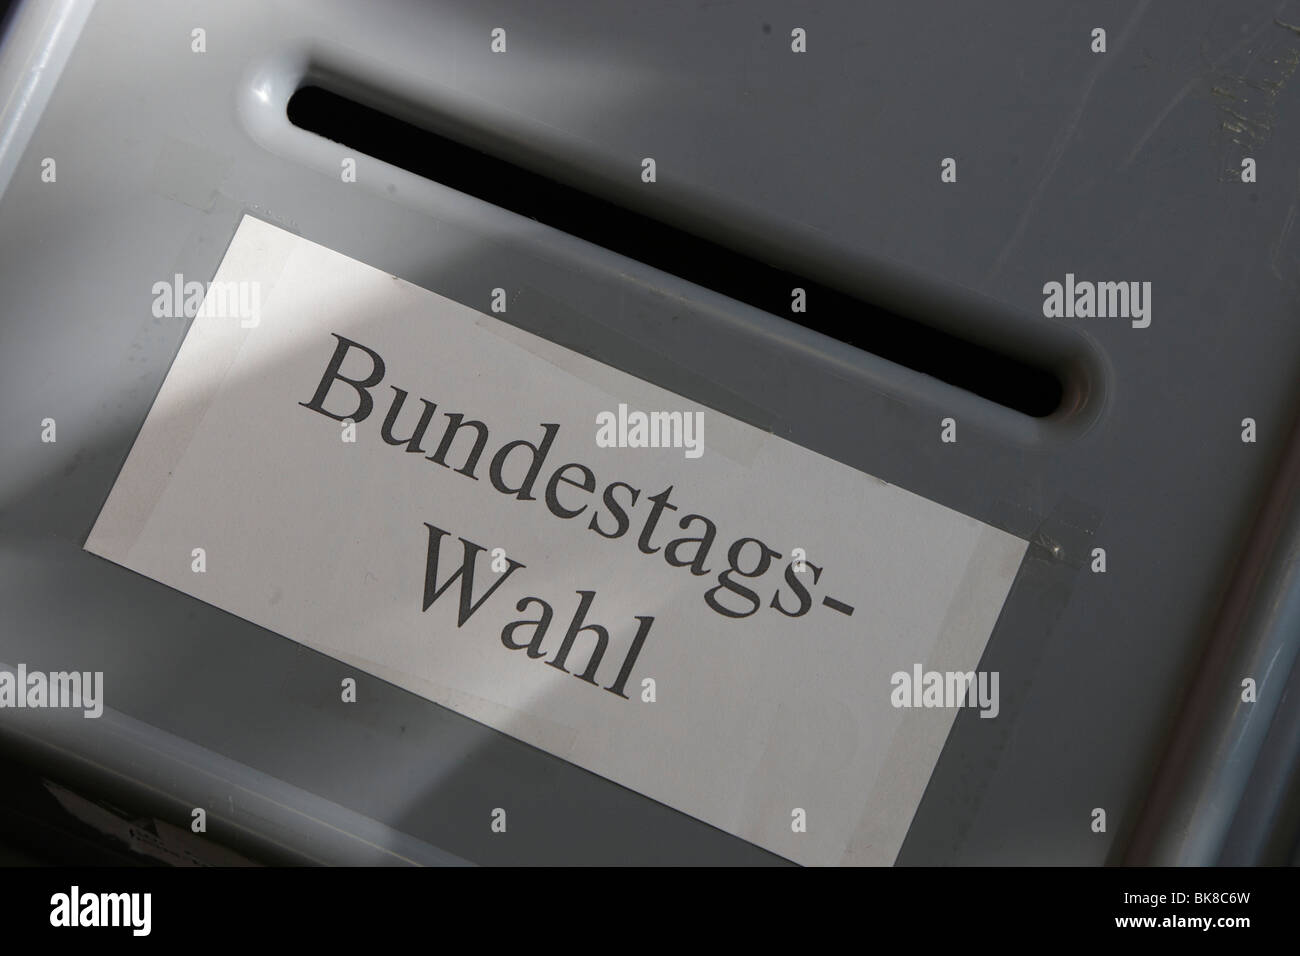 Bundestag elections, ballot-box - Stock Image